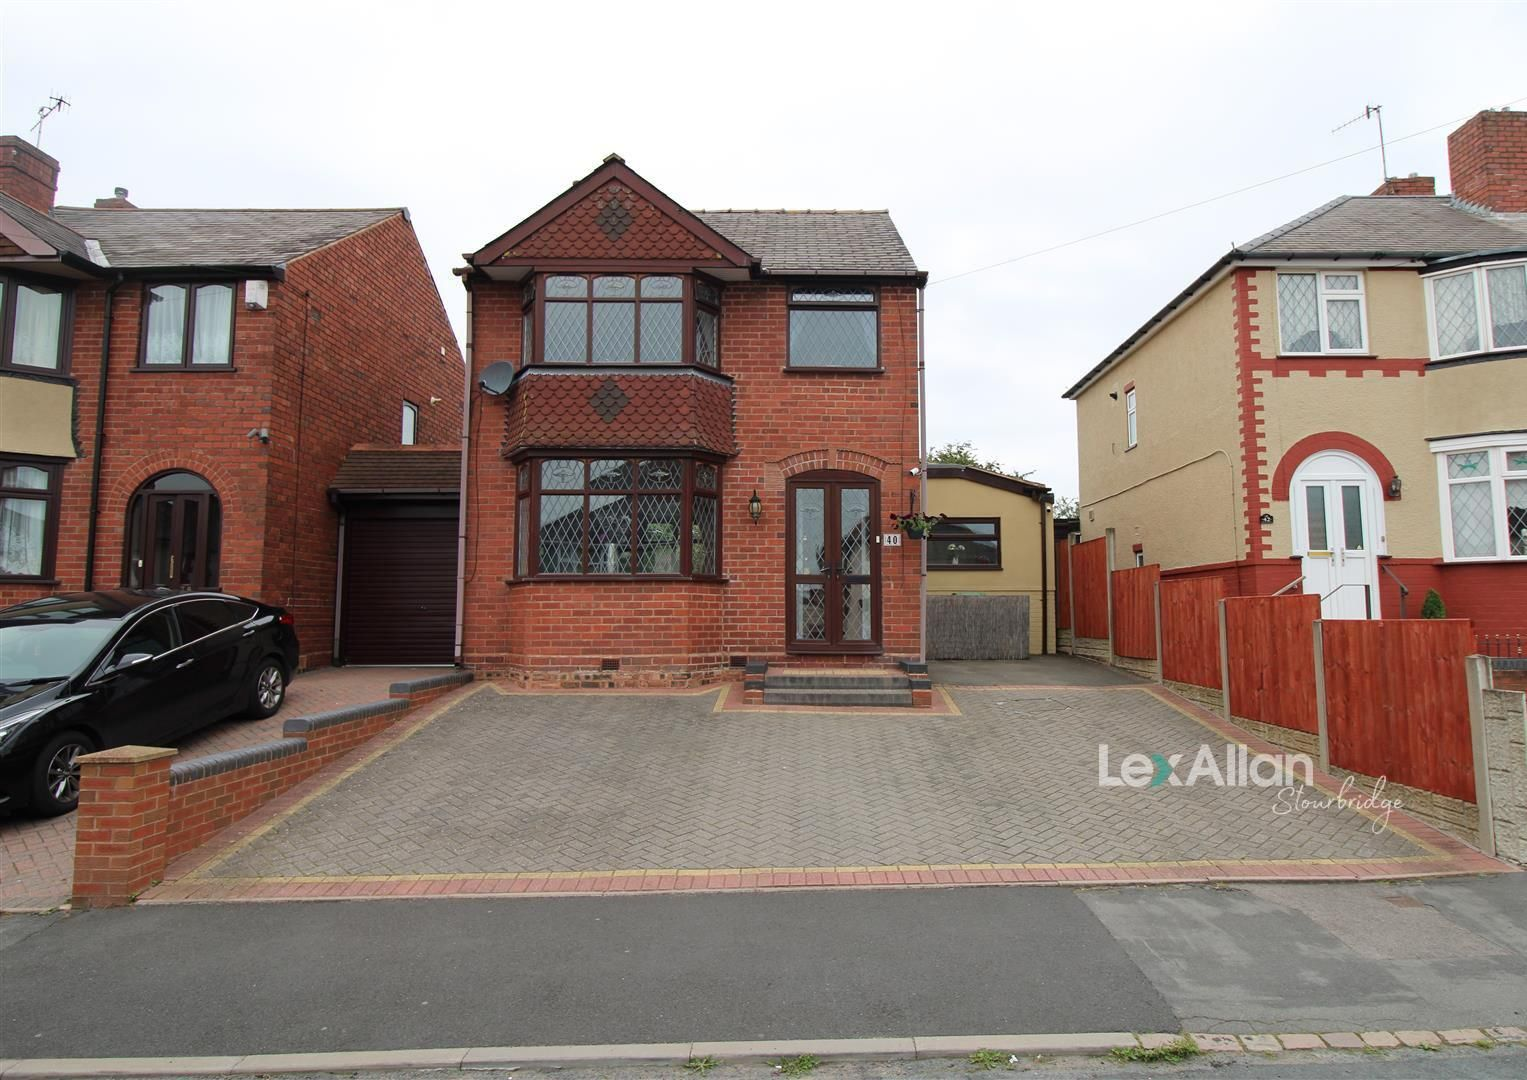 4 bed detached for sale, DY2